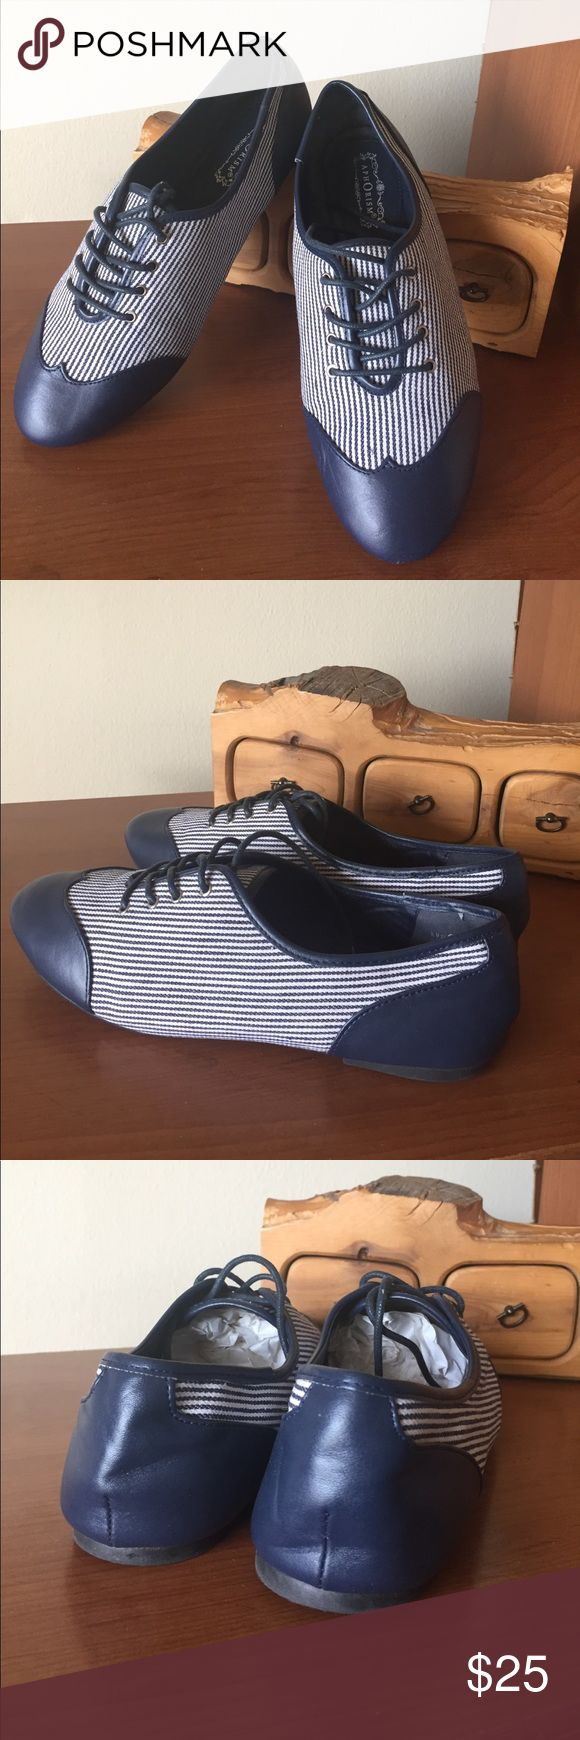 APHORISM CHATHAM Blue Wingtip Oxford Shoe APHORISM CHATHAM Womens Blue Wingtip Widows Peak Striped Oxford Shoe. In good used condition. Aphorism Shoes Flats & Loafers